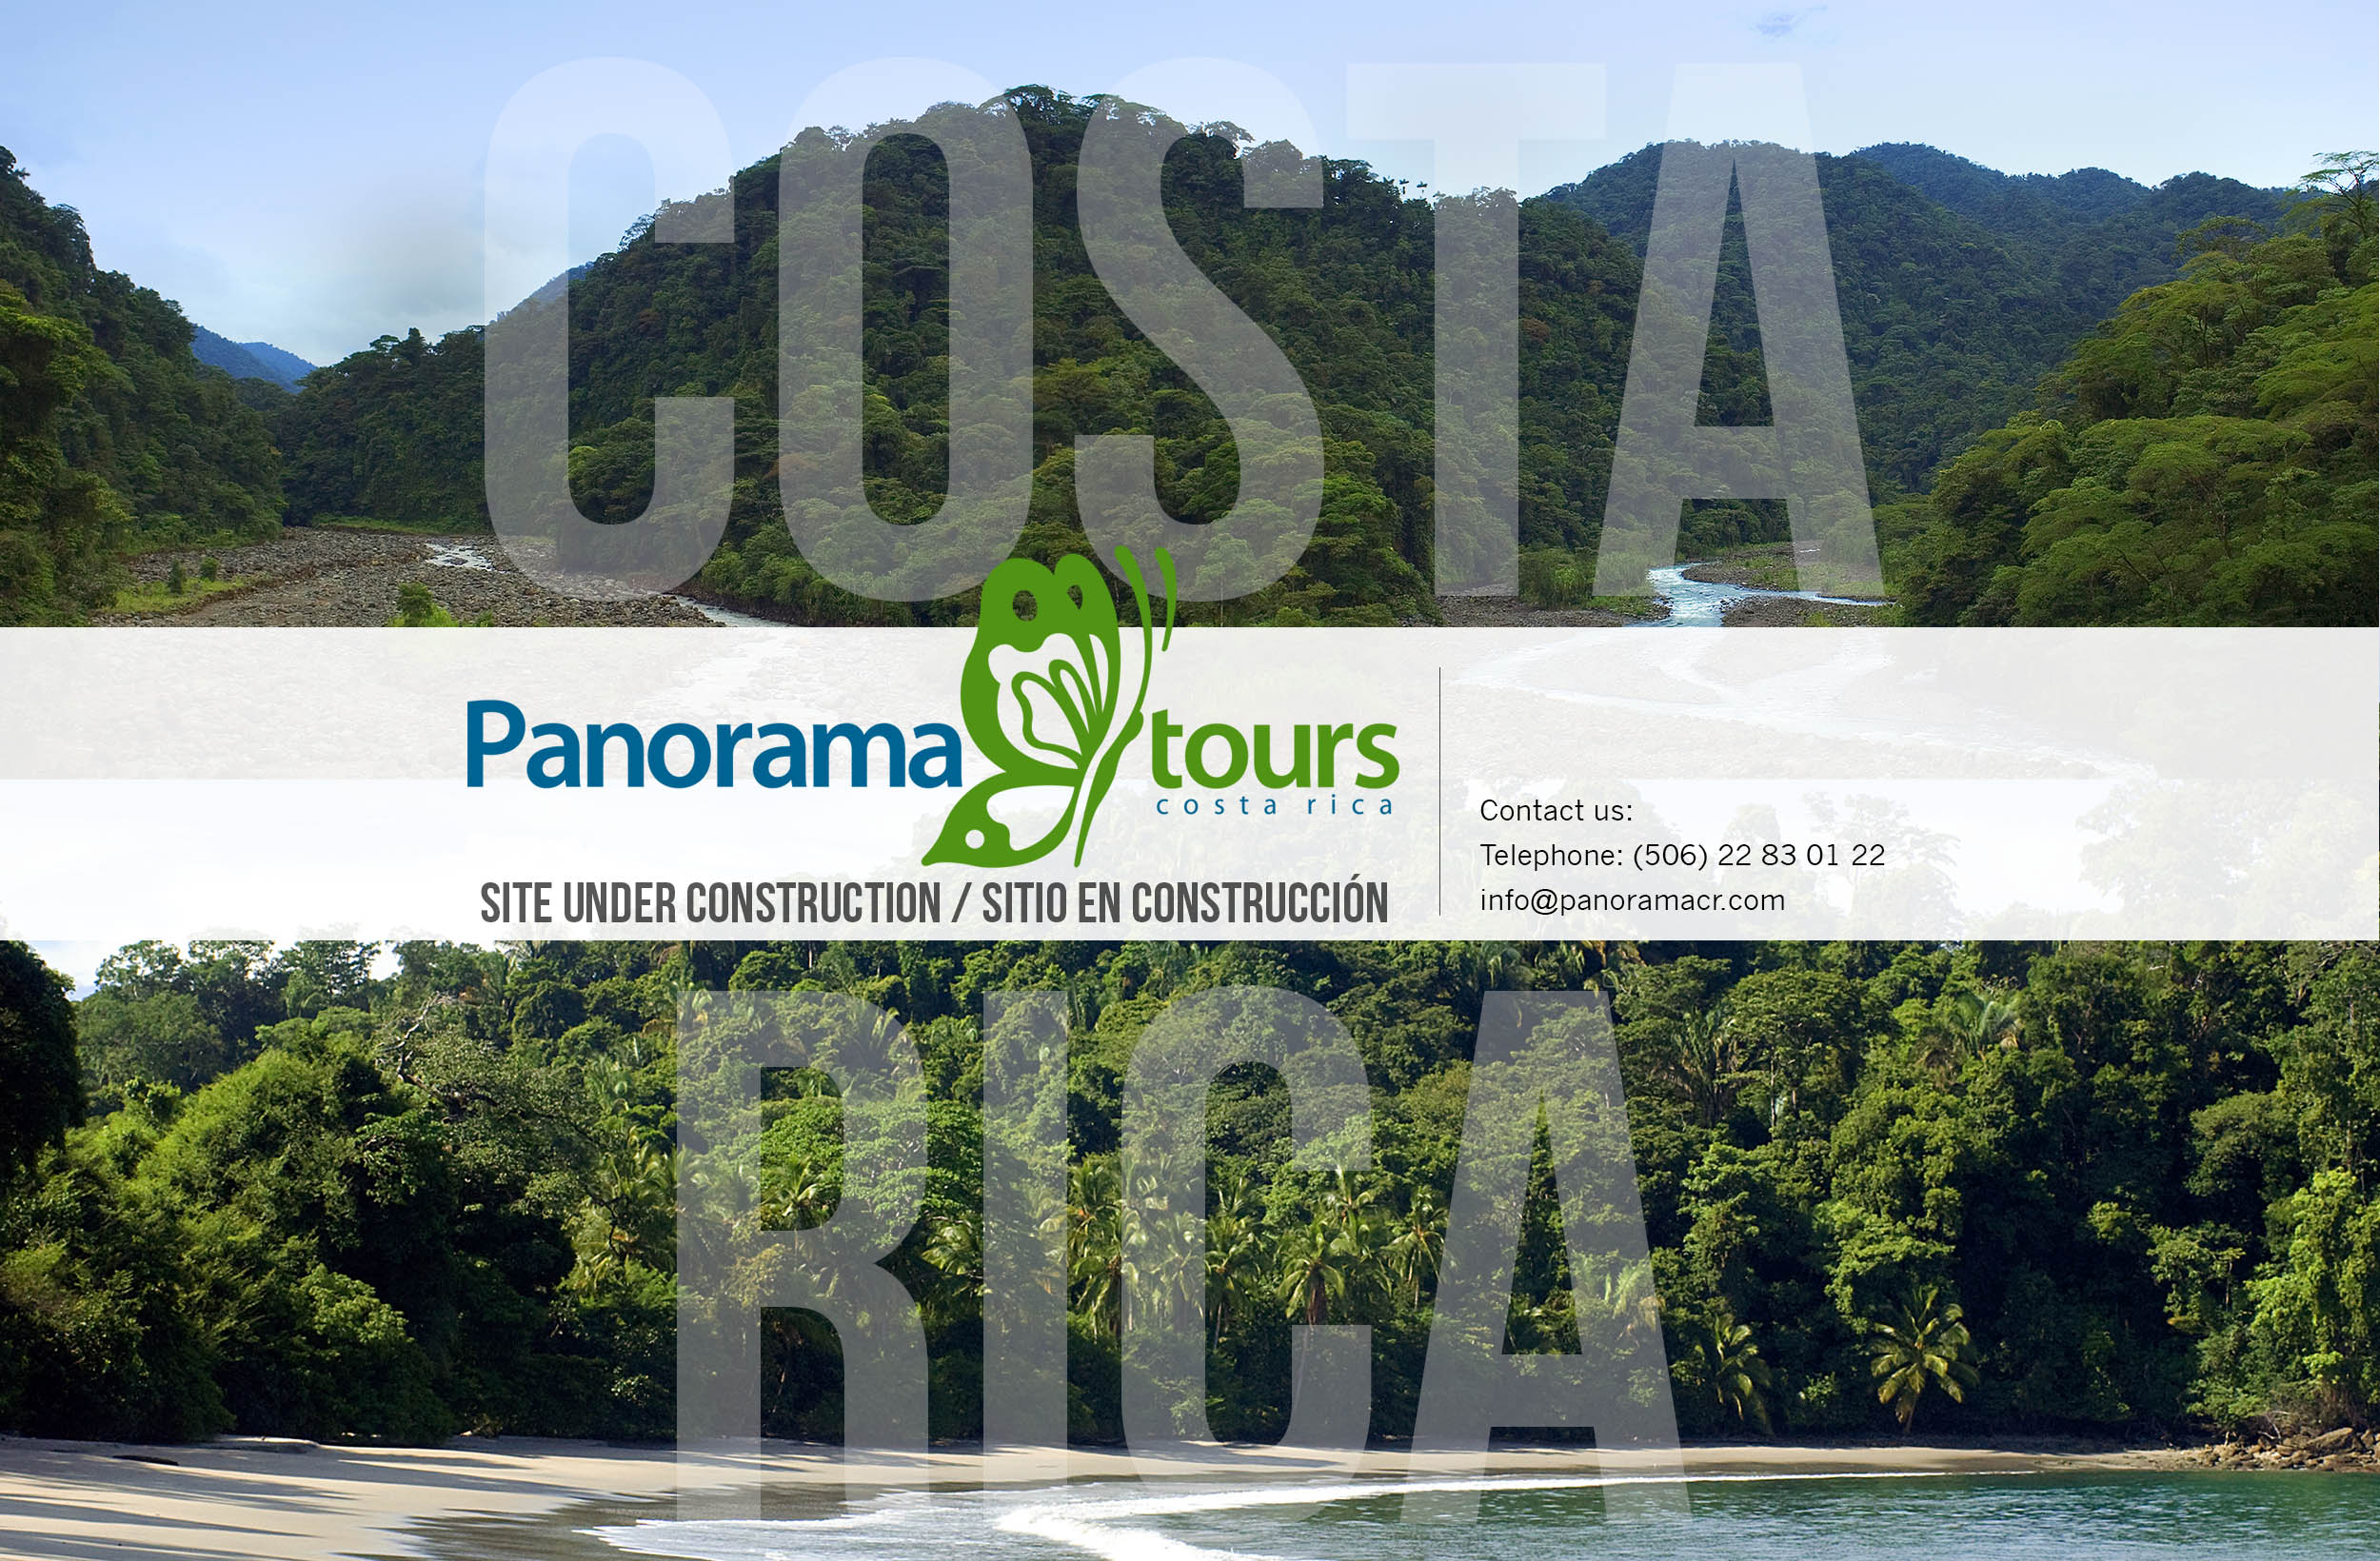 Panorama Tours, Costa Rica